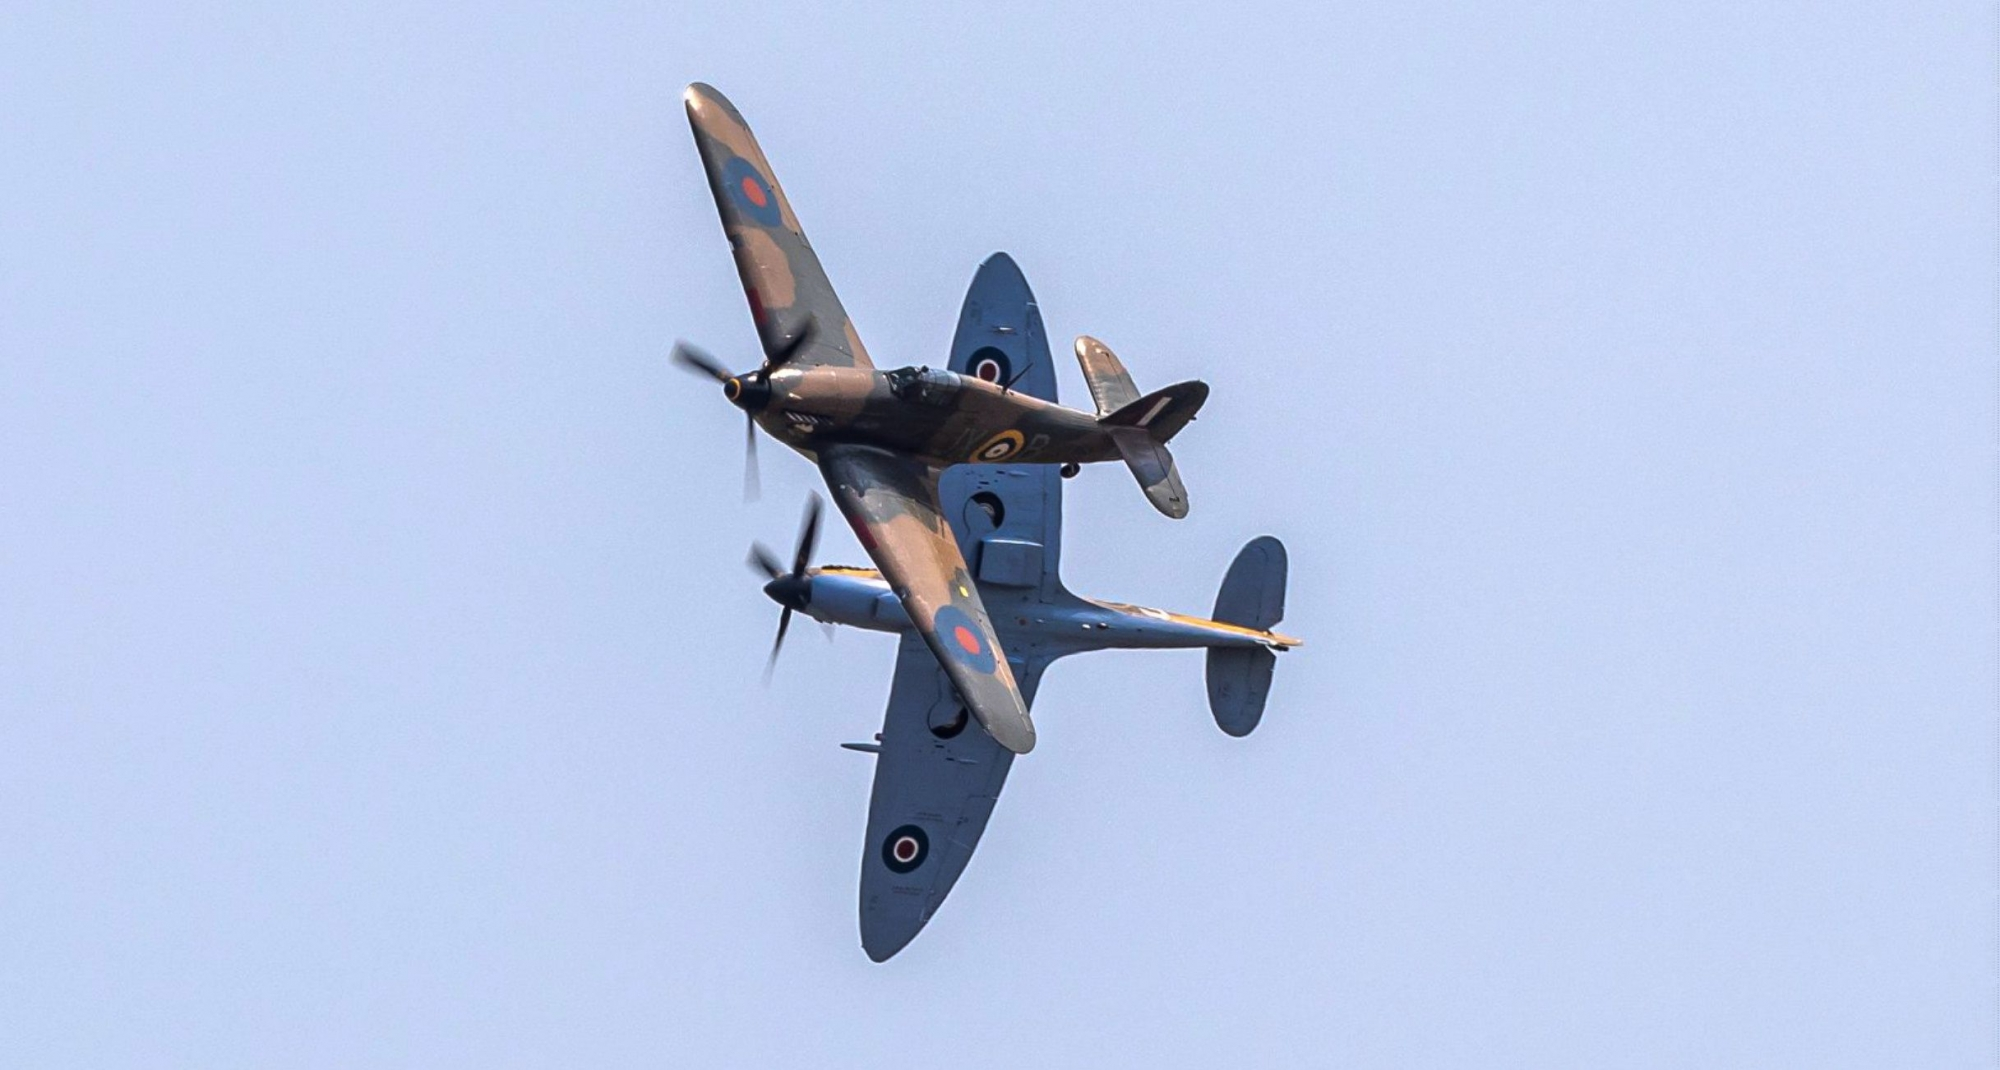 Spitfire and Hurricane practice June 2020